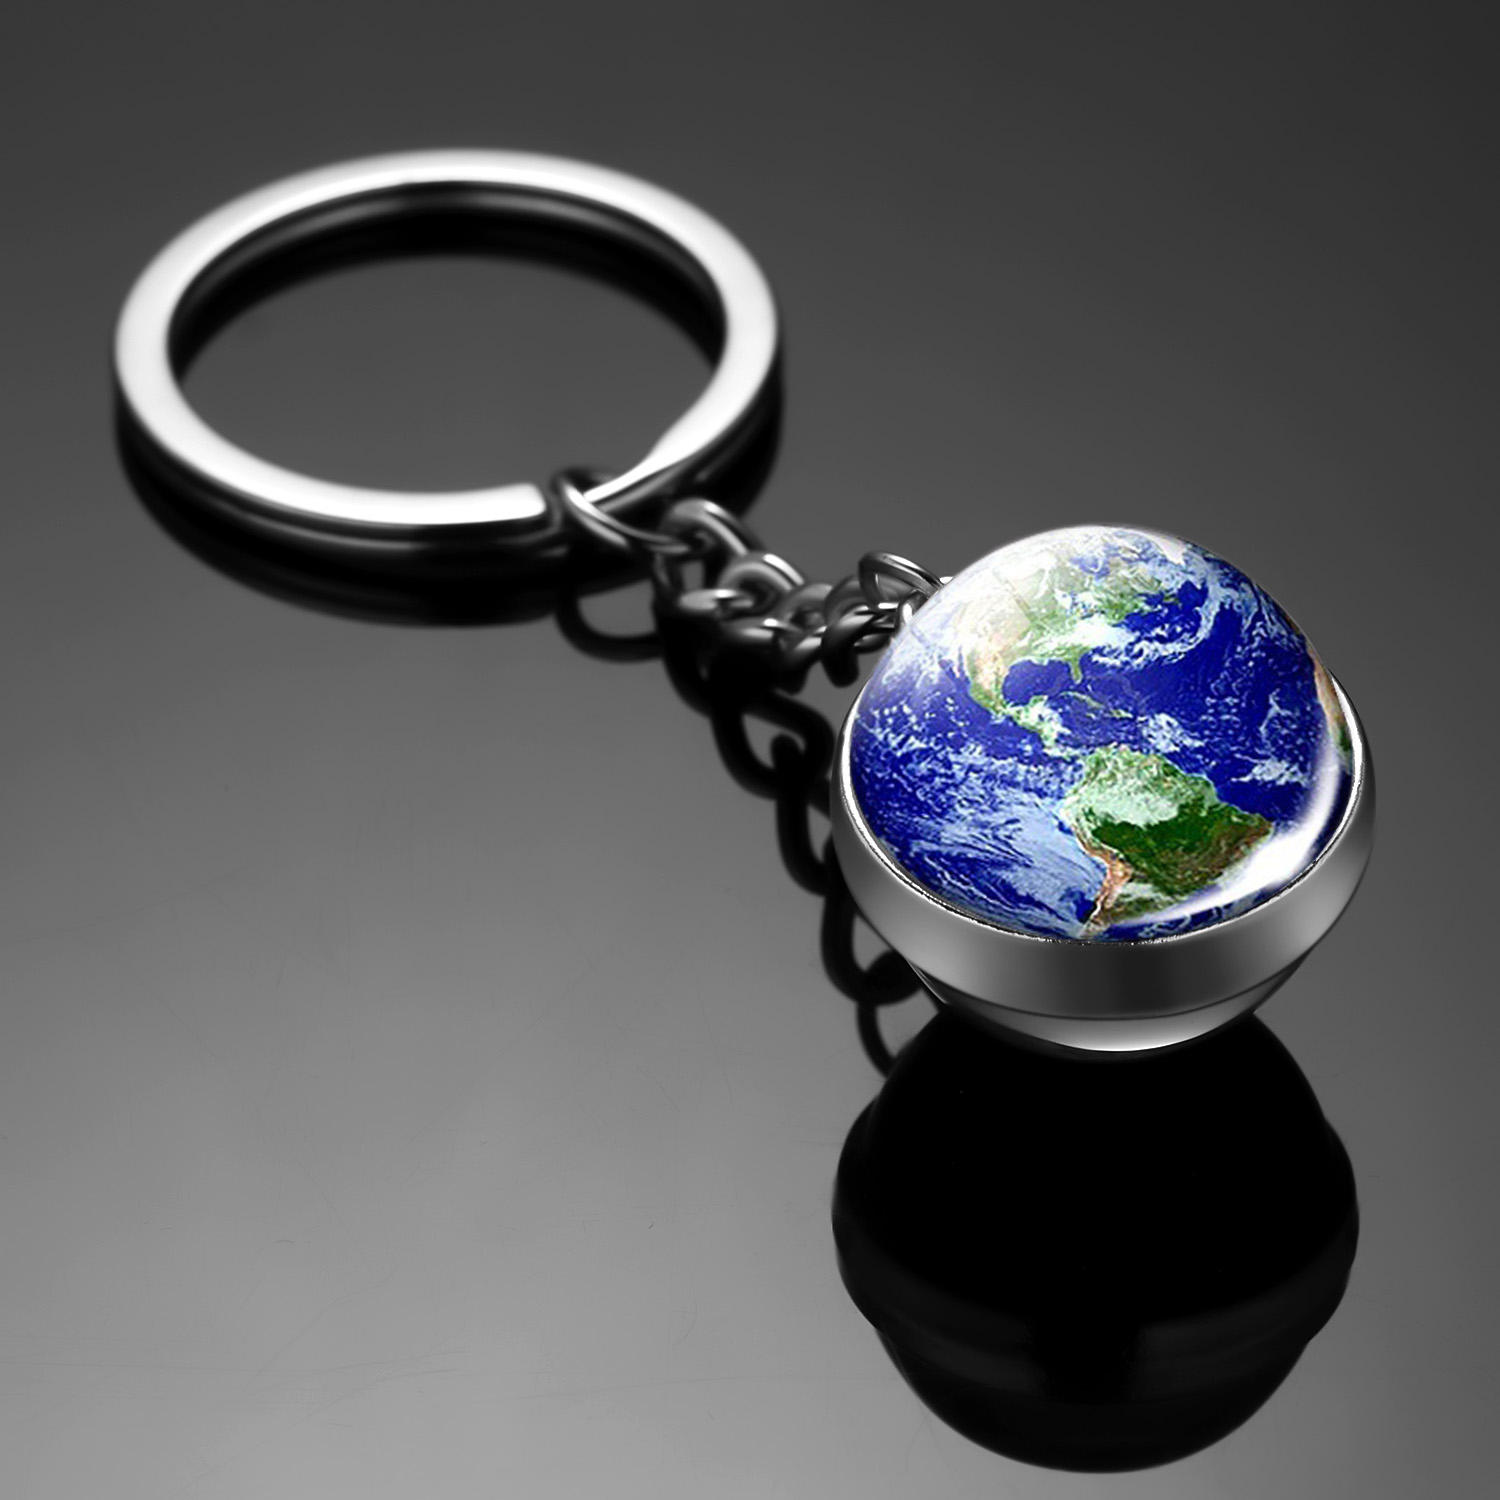 Charm New Moon Earth Mars Girl Women Gifts Double Side Glass Ball Solar System Planet Men Keychain